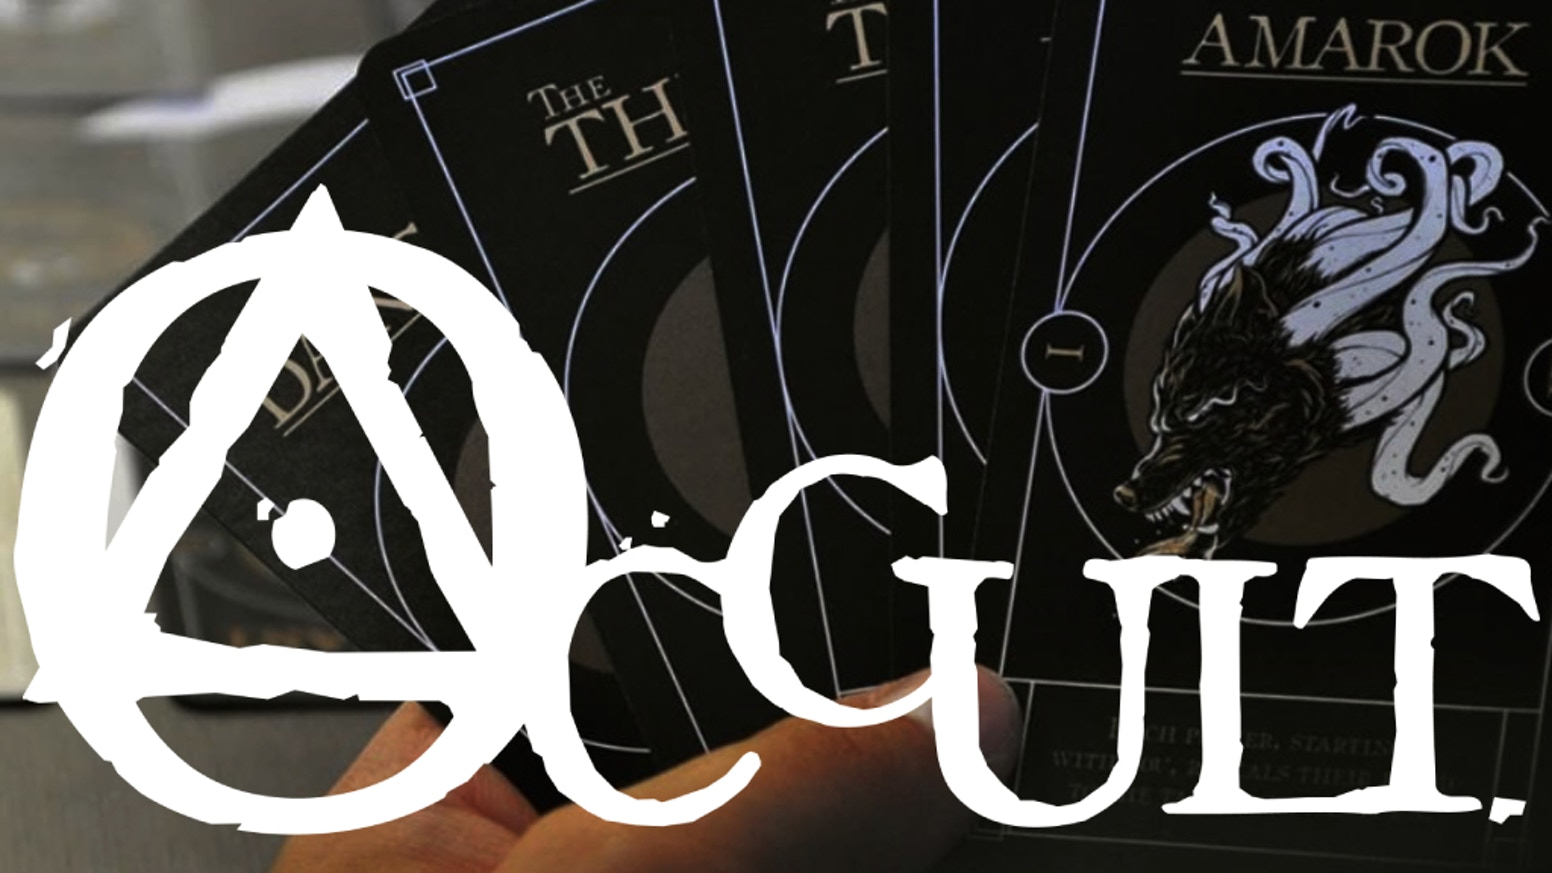 Occult: The Card Game